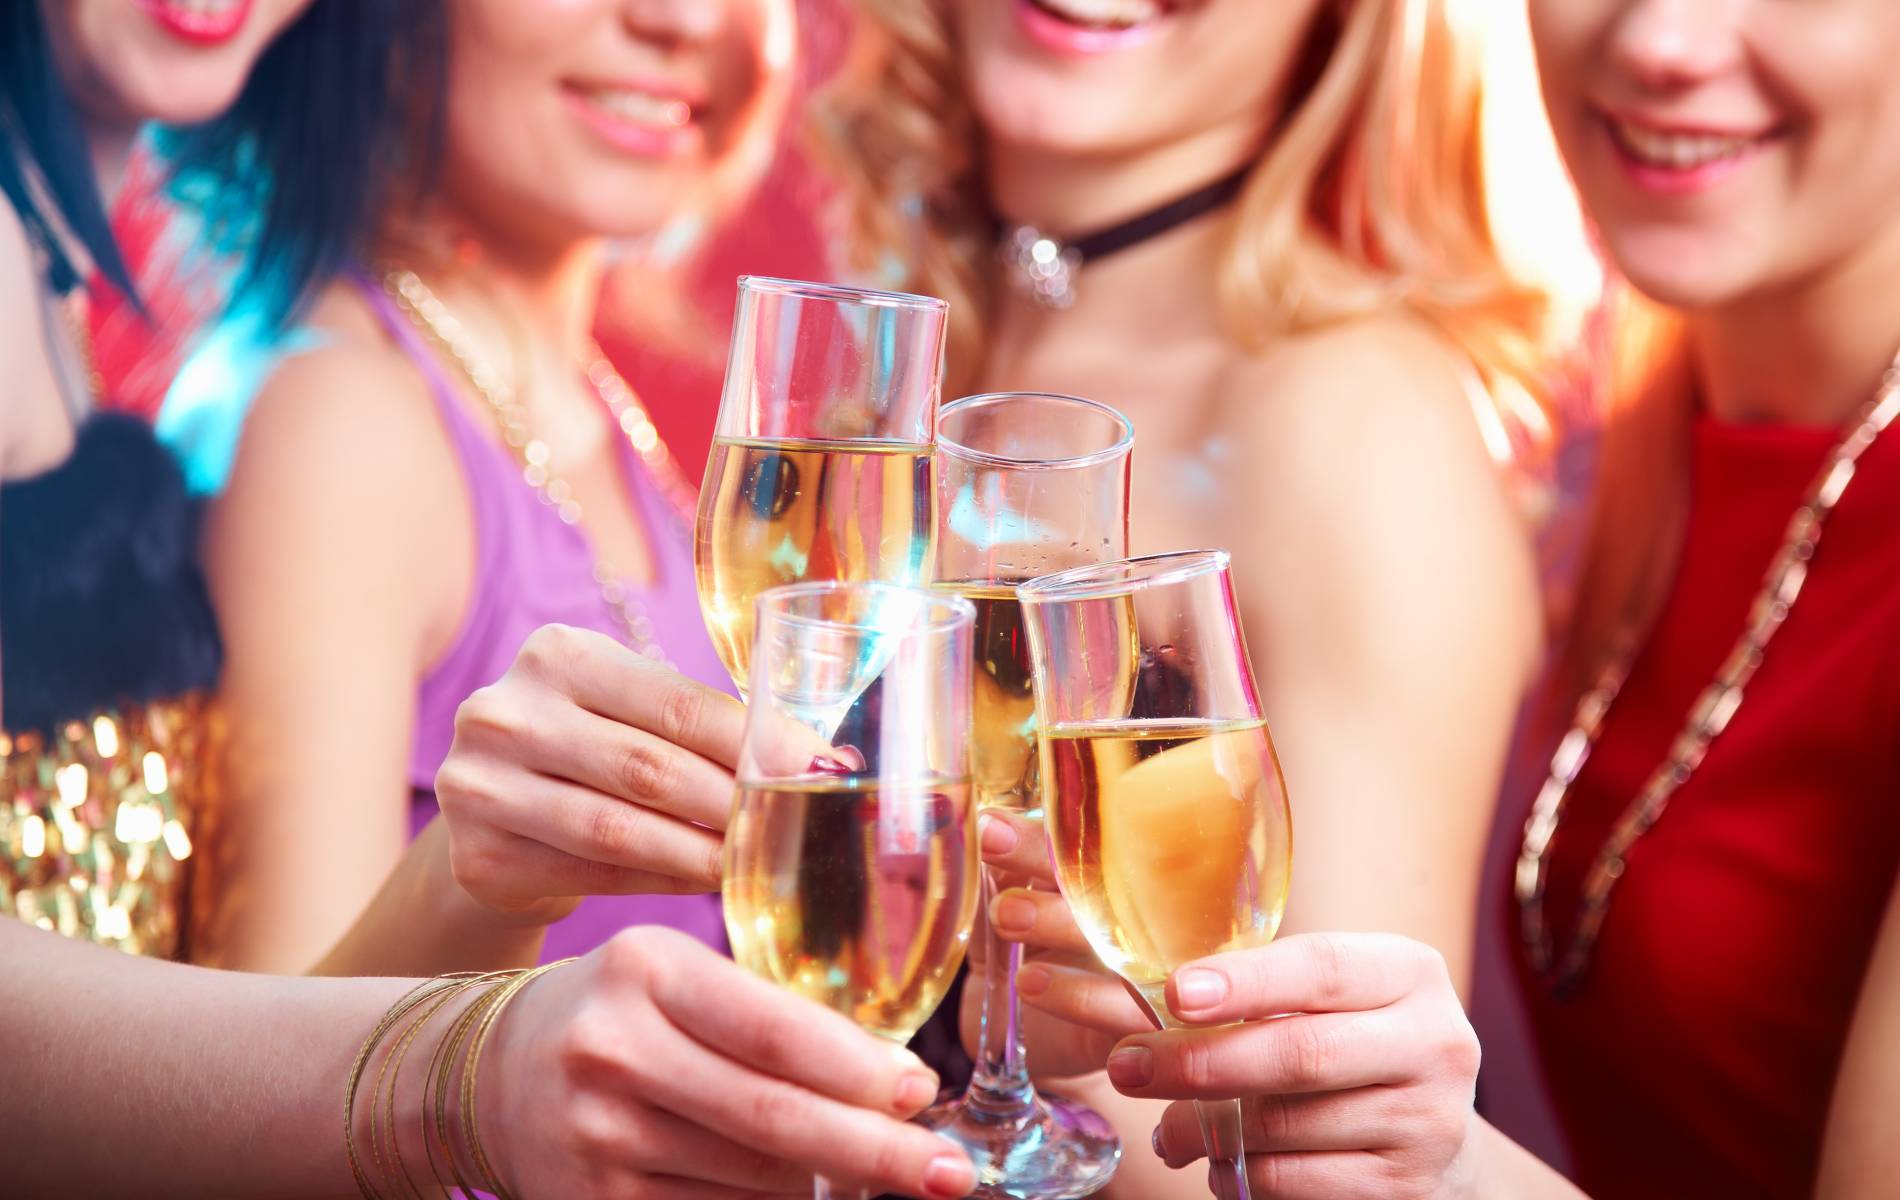 What the Spouse of an Alcoholic May Experience